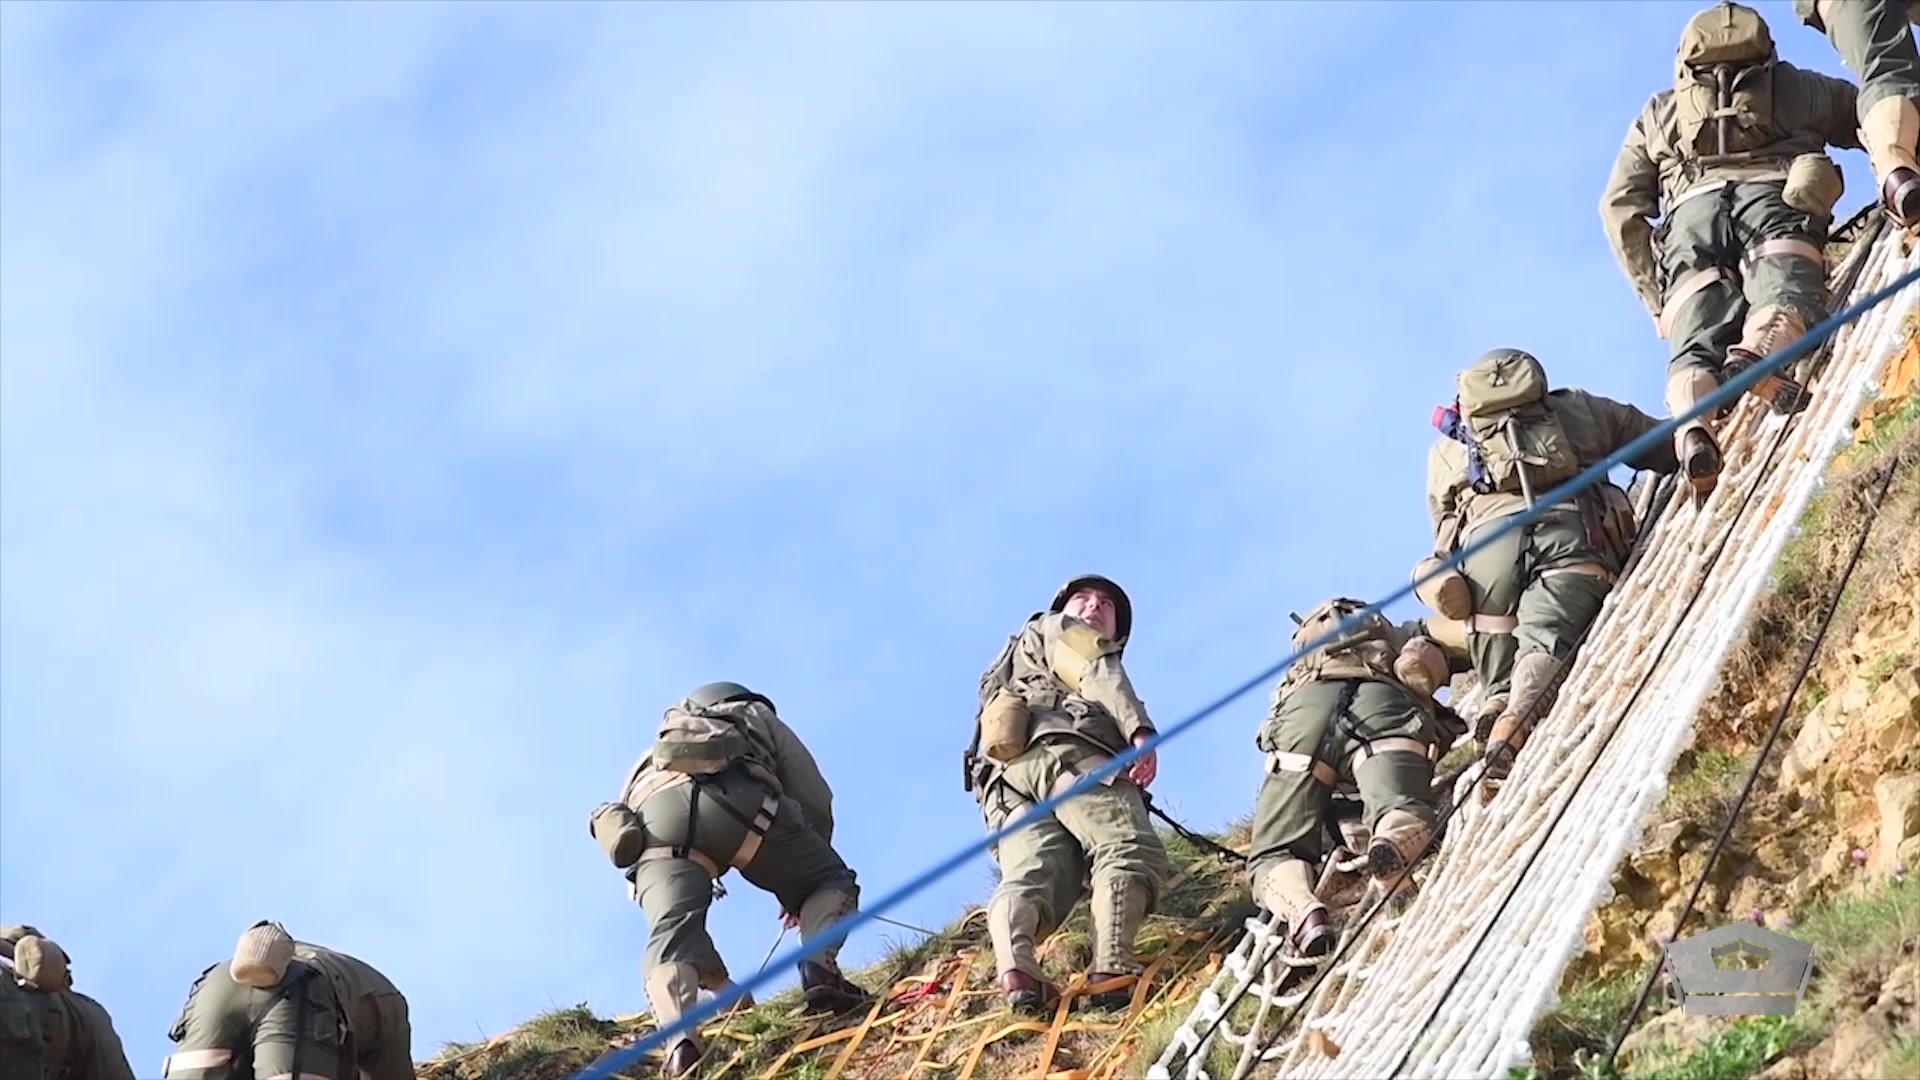 U.S. Army Rangers assigned to the 75th Ranger Regiment climb the cliffs at Pointe du Hoc in Cricqueville en Bessin, France, June 4, 2019. Rangers scaled the cliff to honor the 135 men killed or wounded from the 2nd and 5th Ranger Battalions while capturing and holding Pointe du Hoc. More than 1,300 U.S. service members, partnered with 950 troops from across Europe and Canada, converged in northwestern France to commemorate the 75th anniversary of Operation Overlord, the World War II Allied invasion of Normandy, commonly known as D-Day.  Video by Navy Petty Officer 2nd Class Robert Baldock, AFN Europe